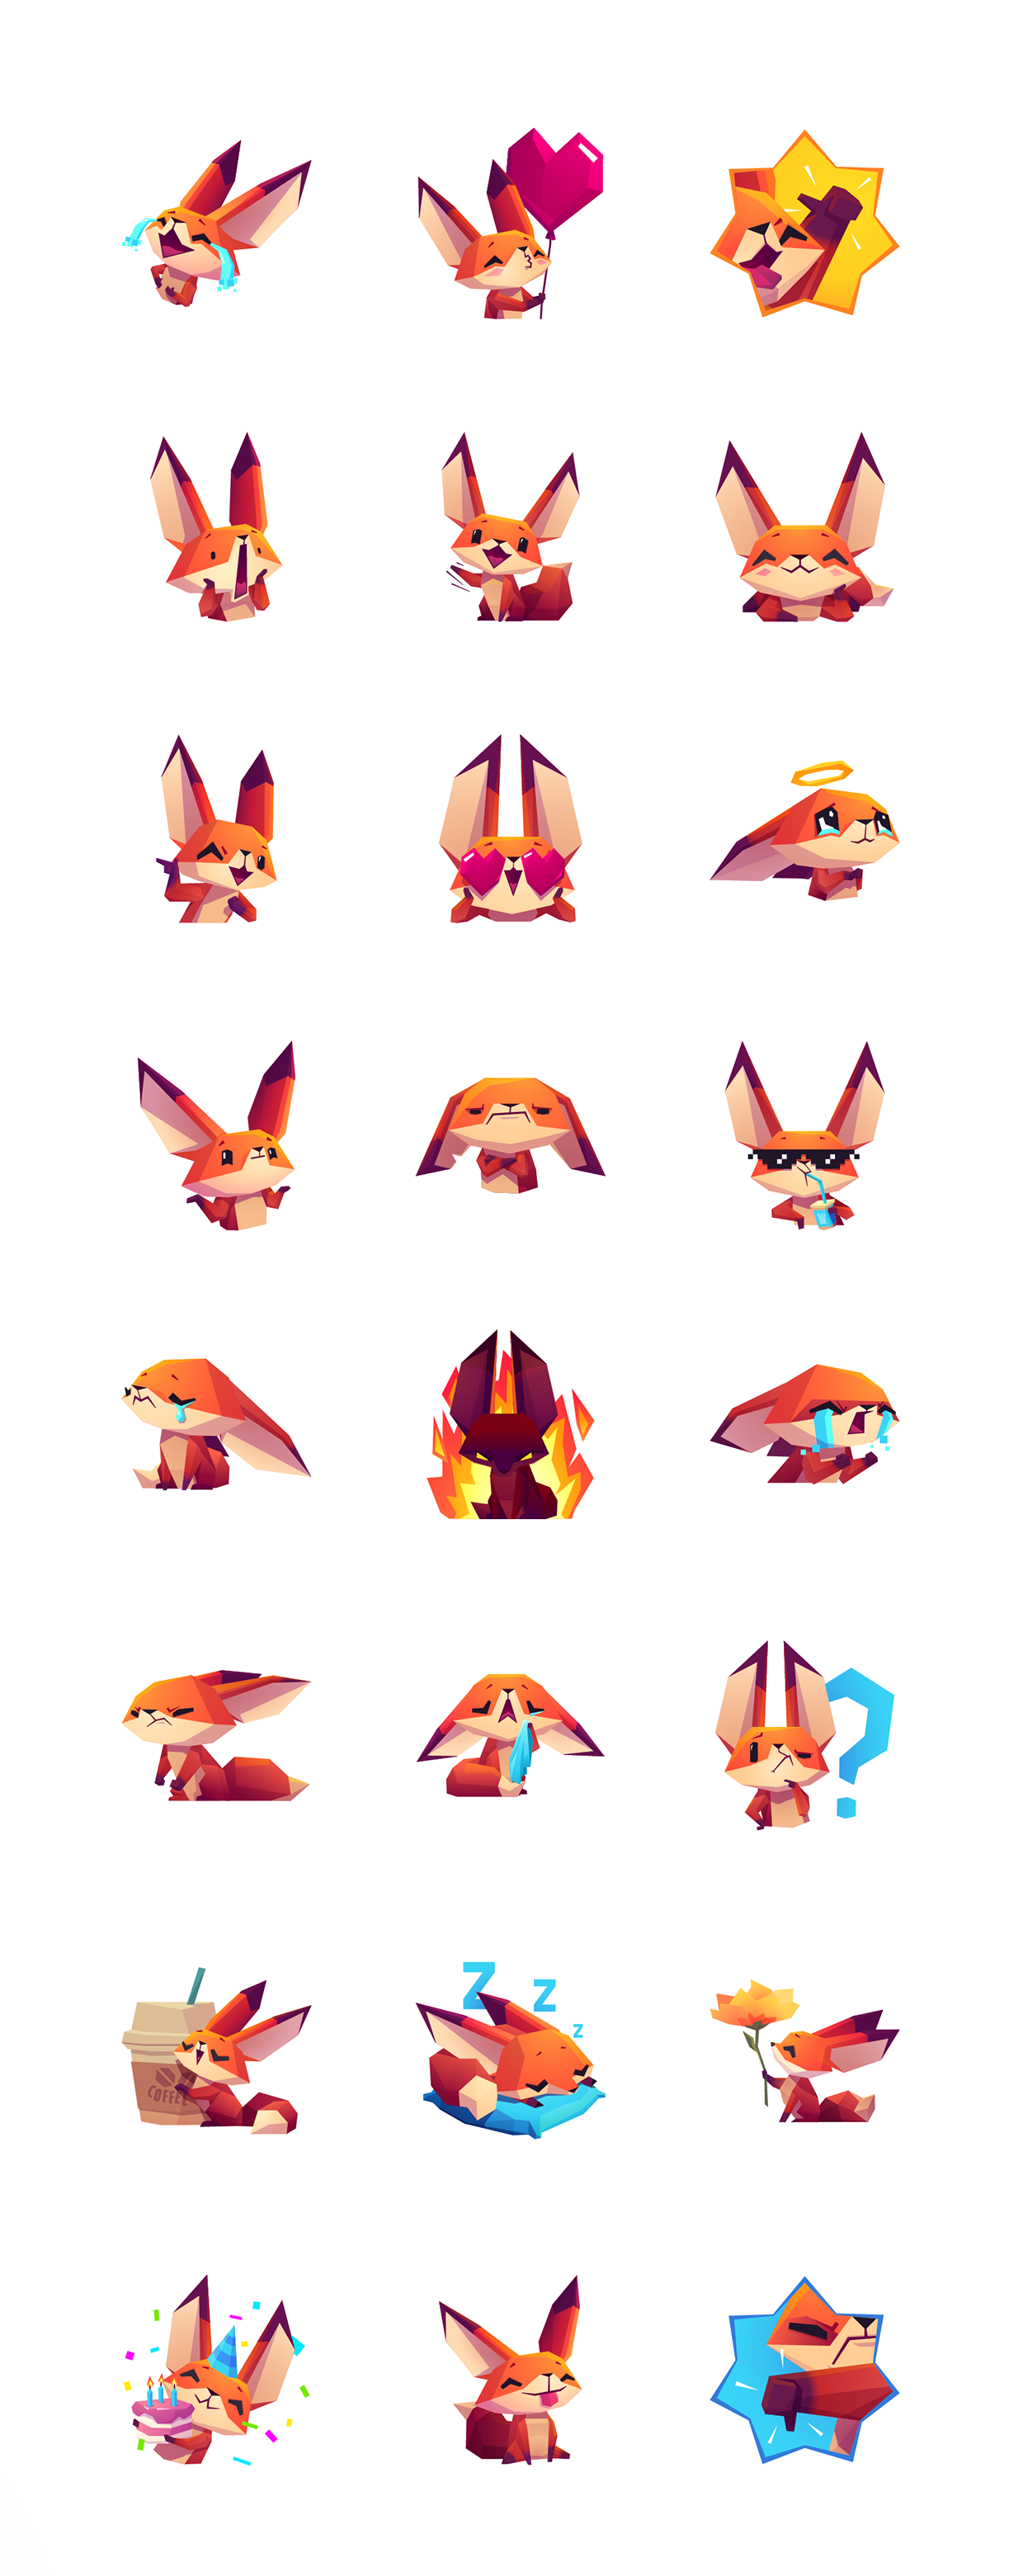 fox character design Deviantart is part of Fighting Fox Character Design By Temiree On Deviantart - Daily Design Inspiration   Abduzeedo